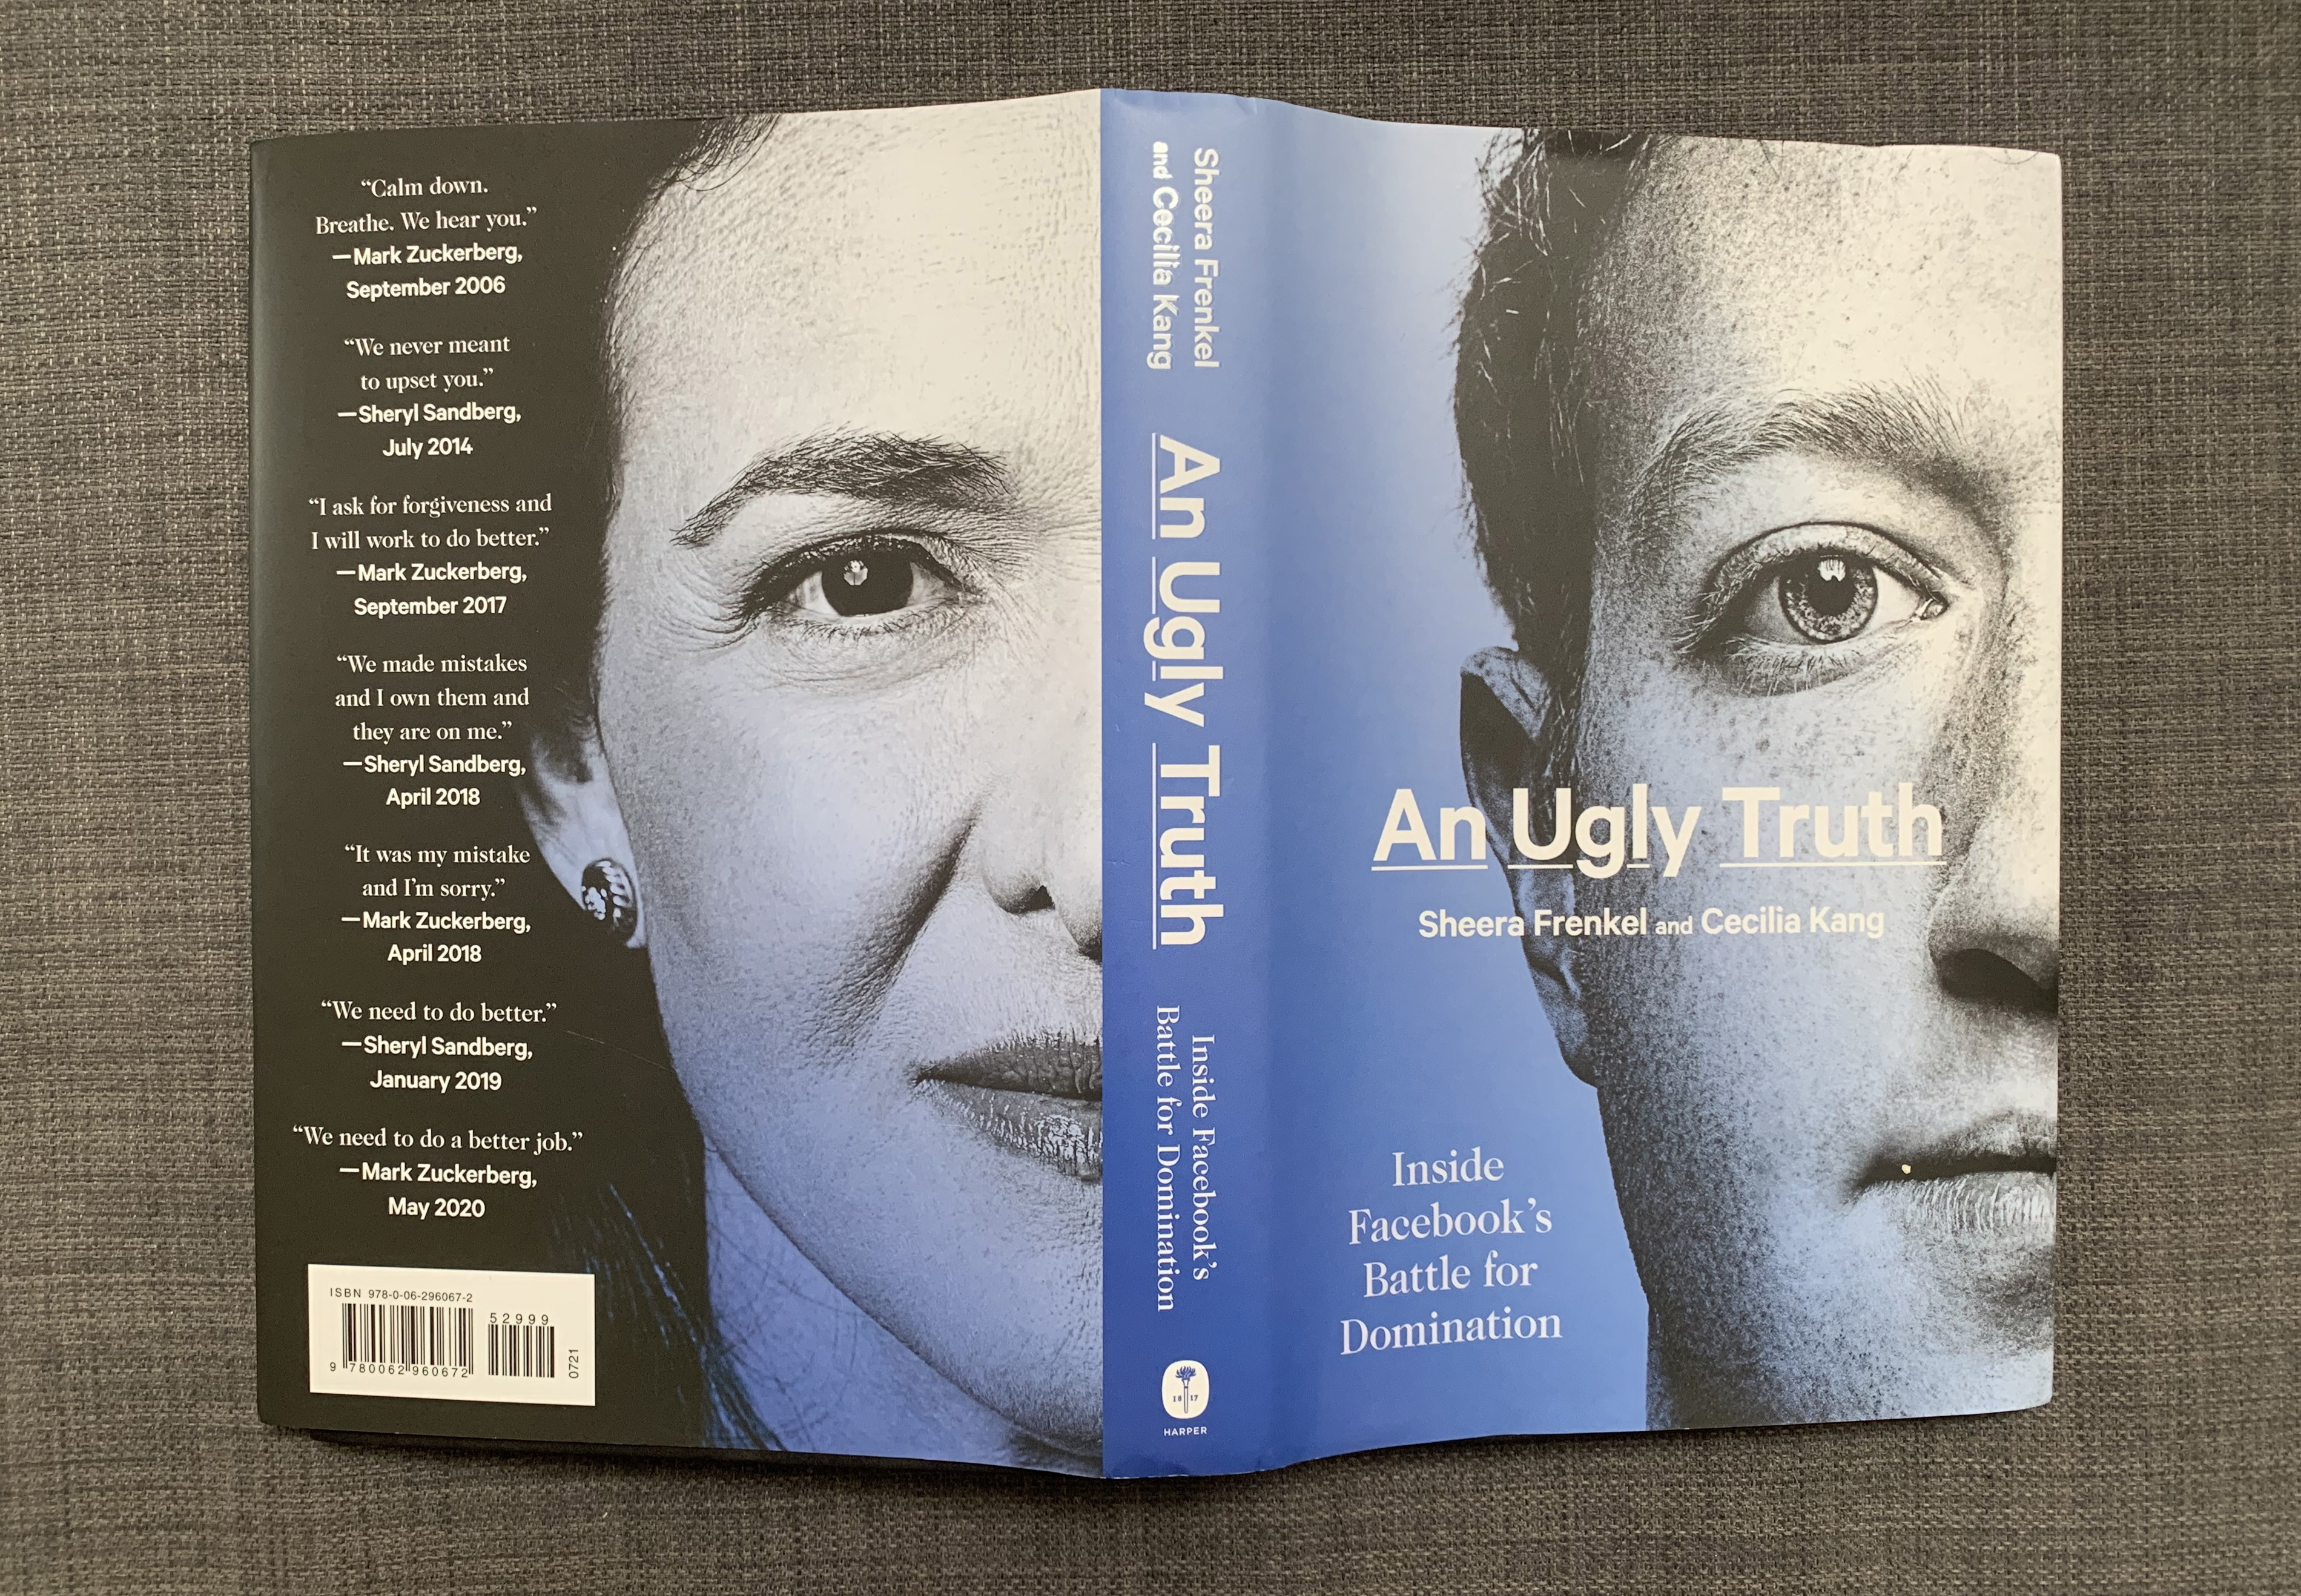 Ugly Truth book splayed out